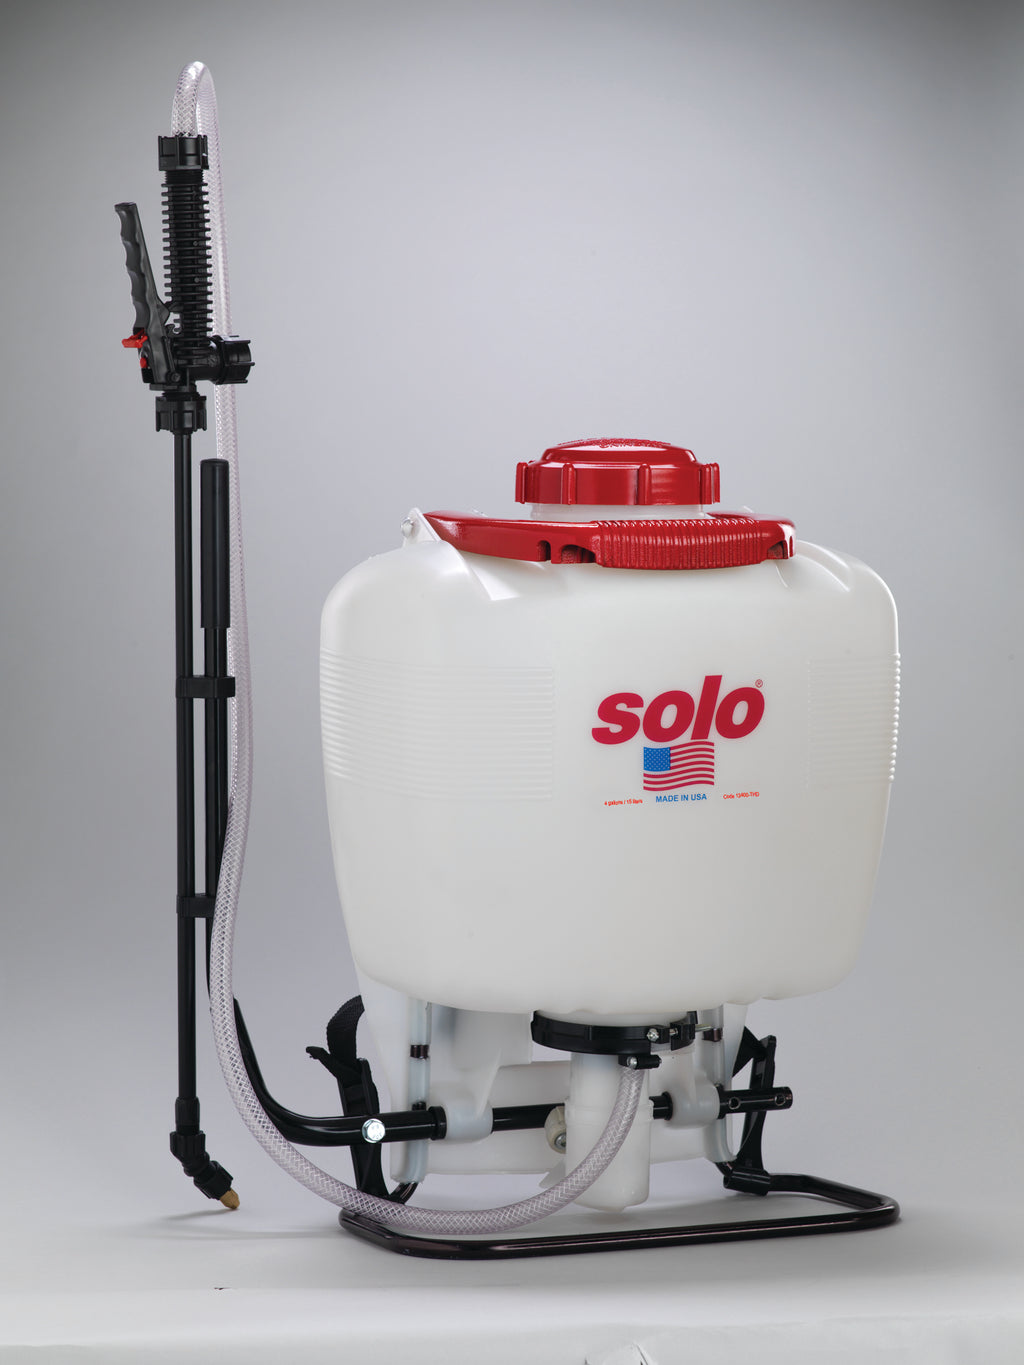 4gl Solo Backpack Sprayer